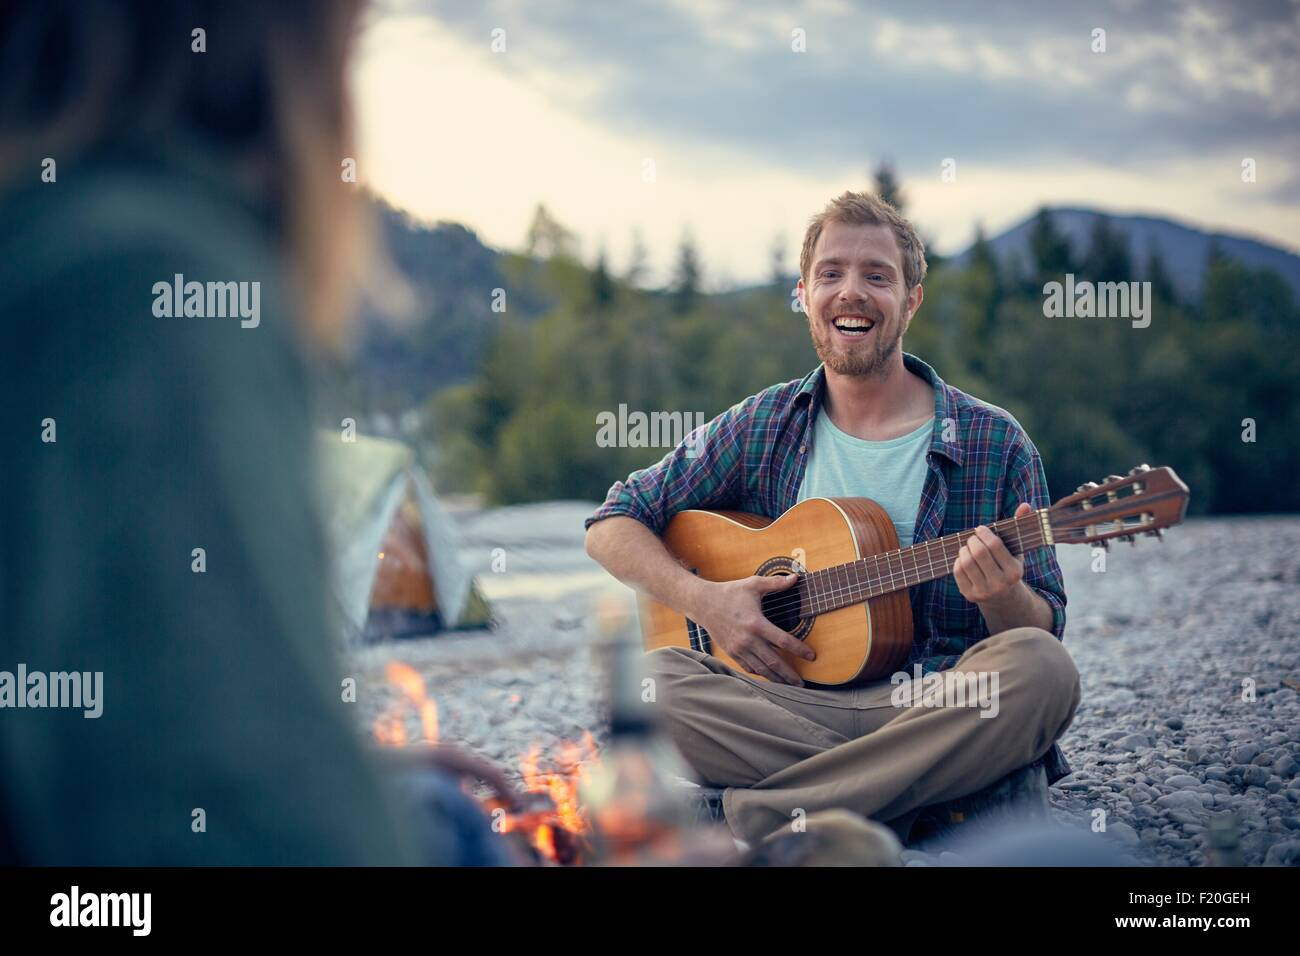 Front view of young man sitting by campfire playing guitar - Stock Image